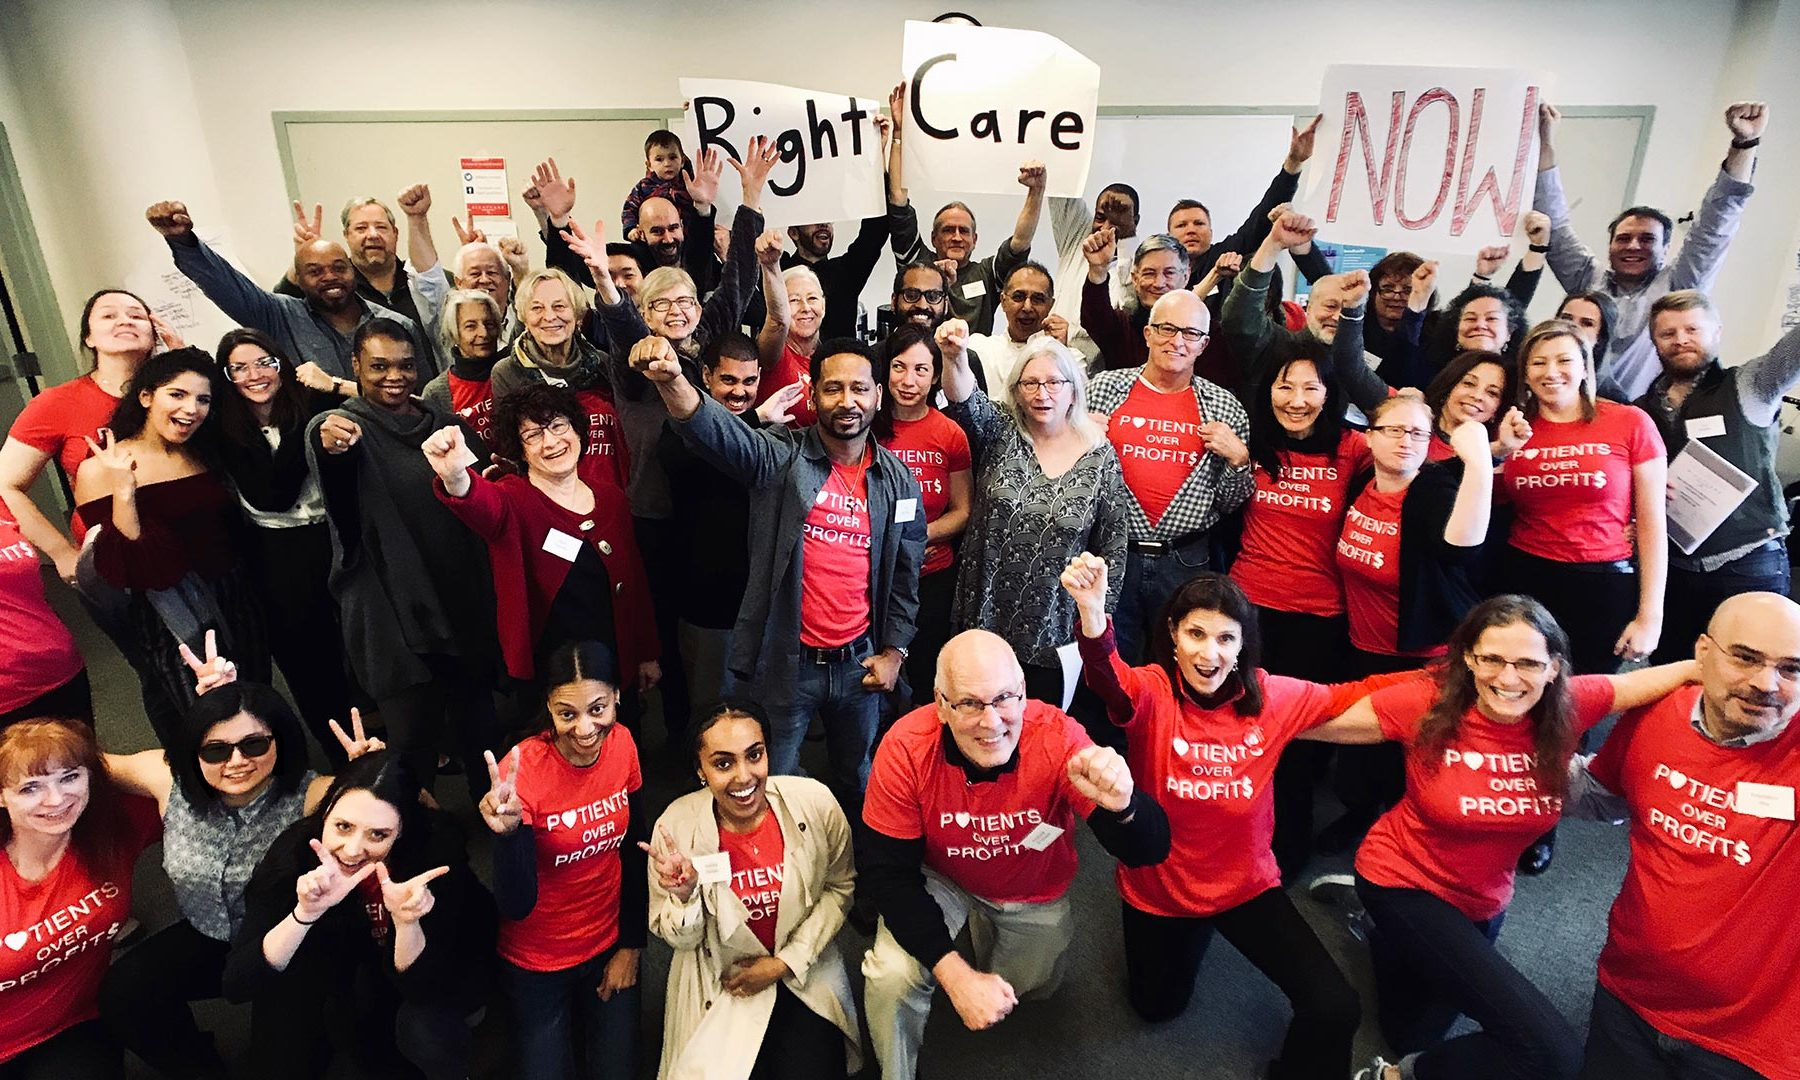 Right Care Alliance